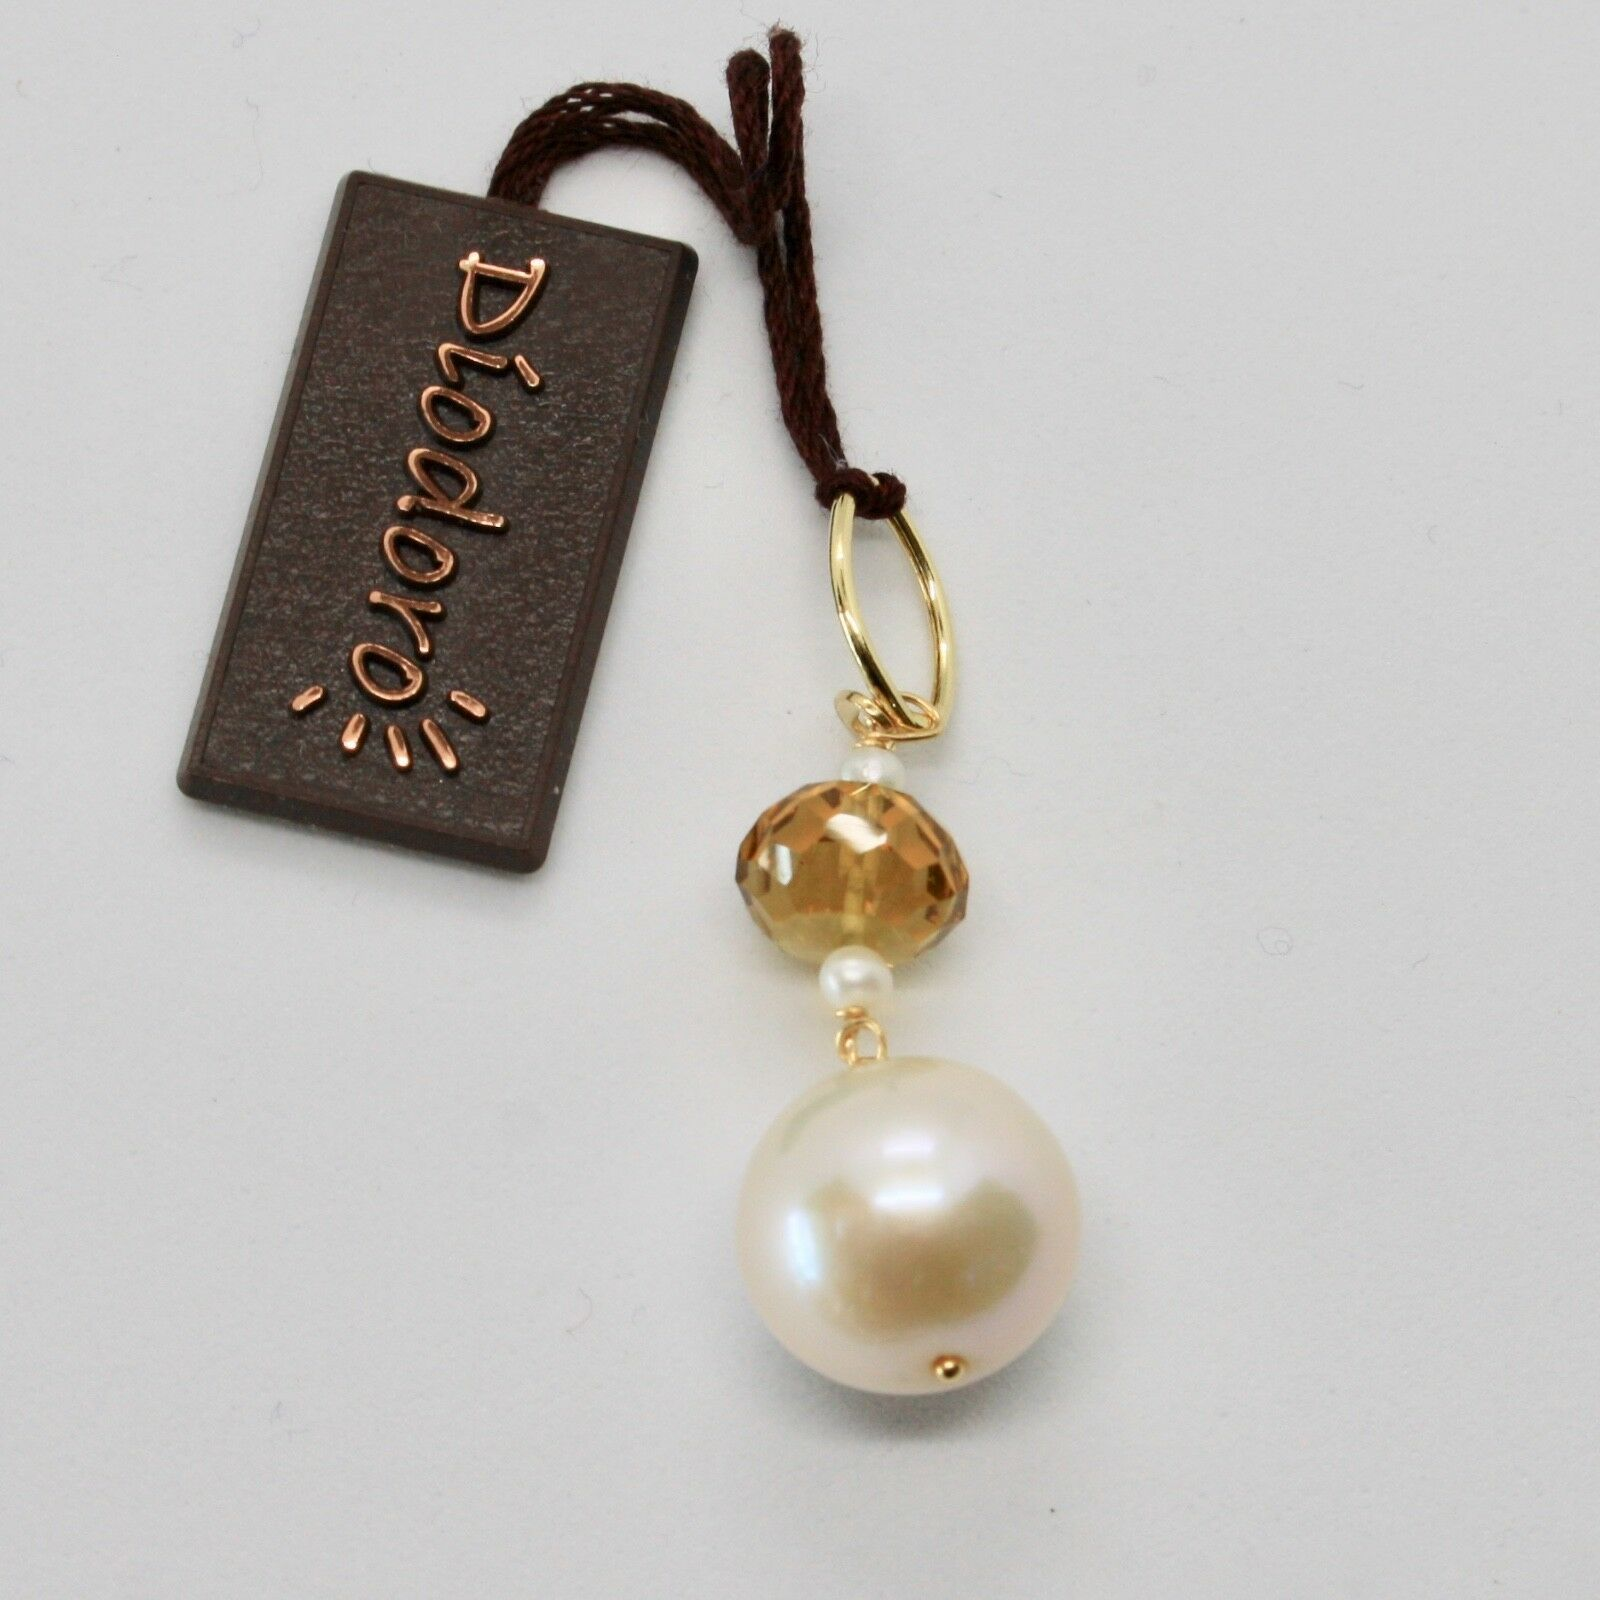 Pendant Yellow Gold 18K 750 with Pearl White of Water Dolce and Quartz Beer